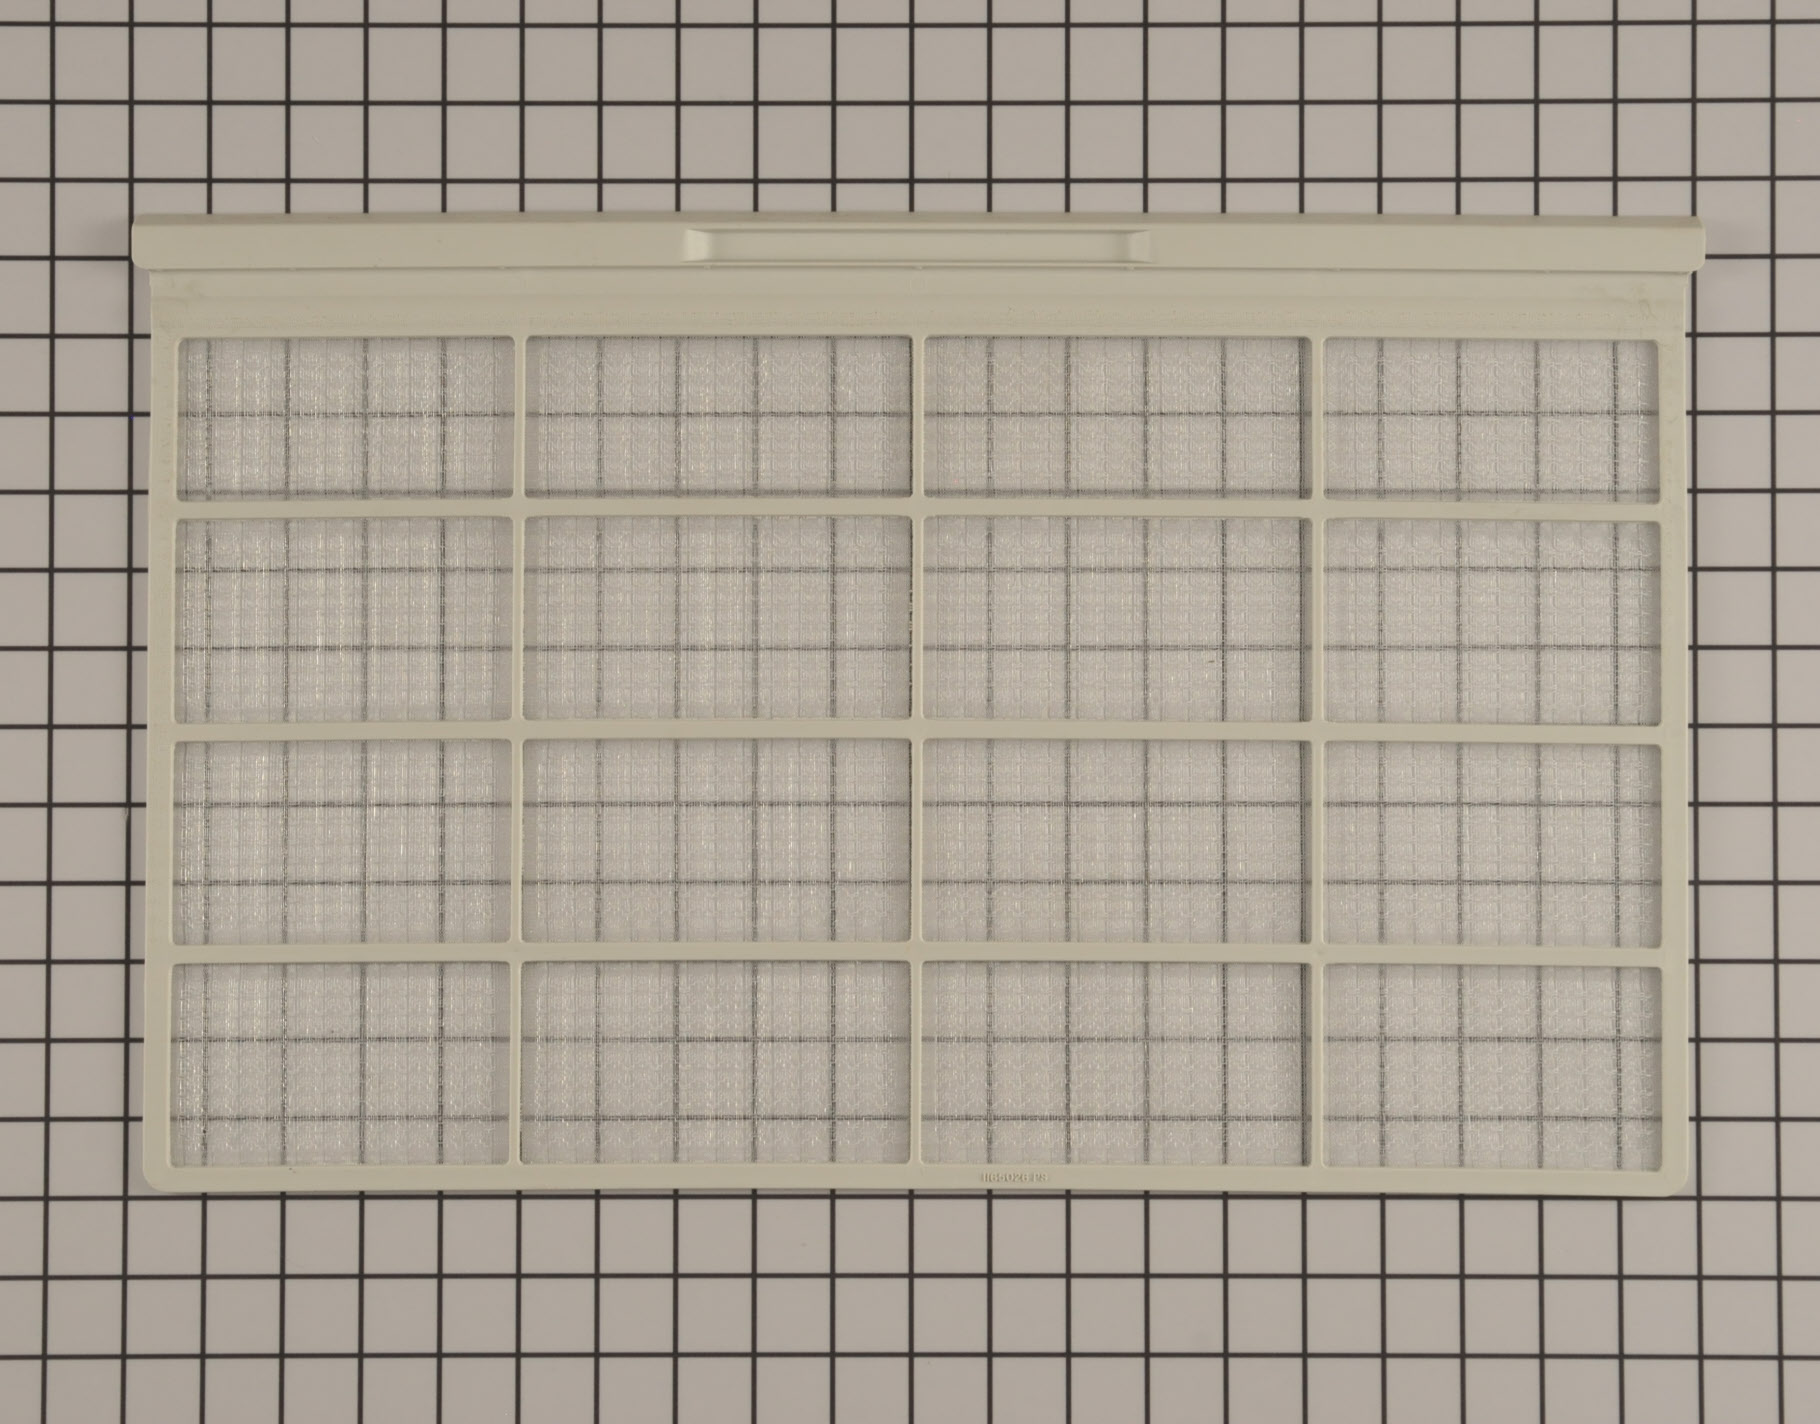 Kenmore Air Conditioner Part # WP1182336 - Air Filter